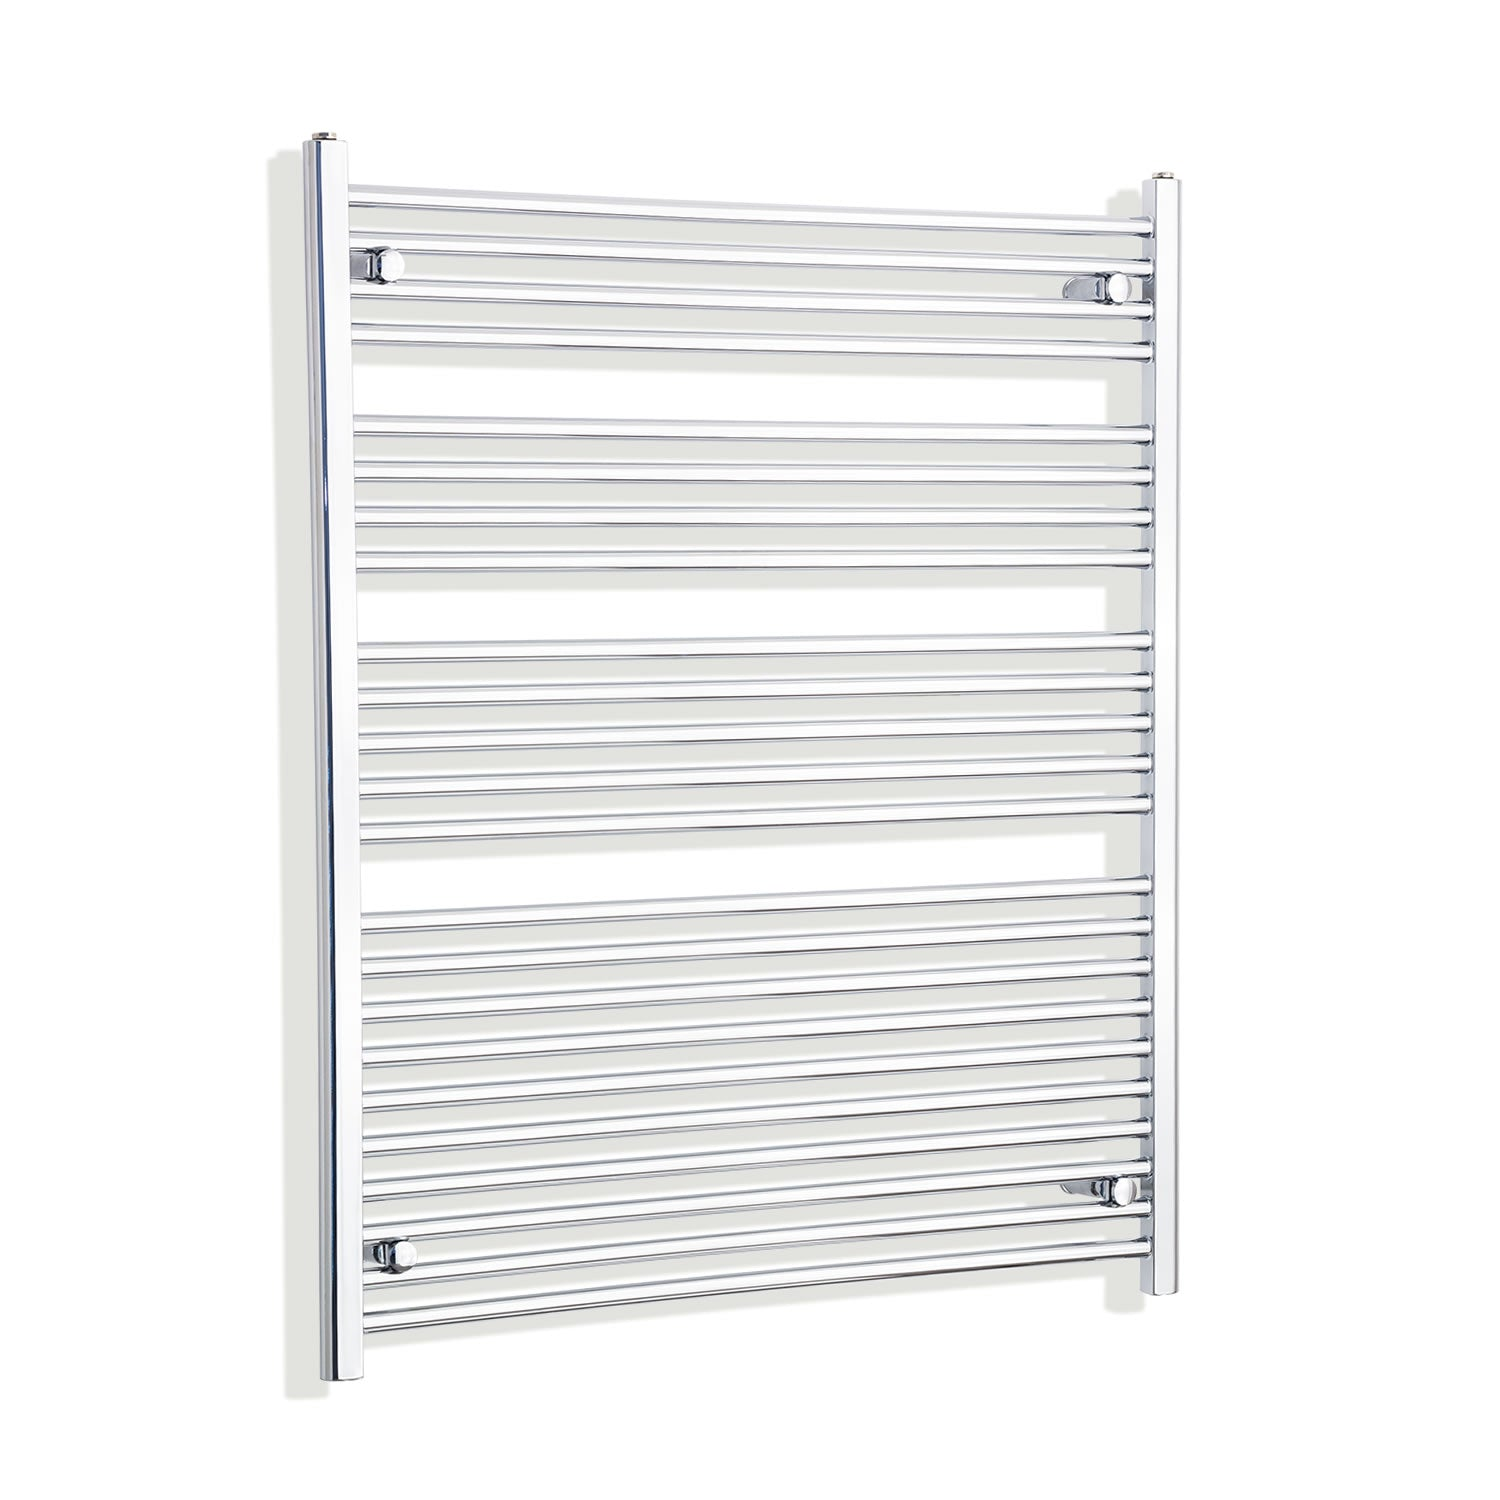 1000mm Wide 1200mm High Flat Chrome Heated Towel Rail Radiator HTR,Towel Rail Only